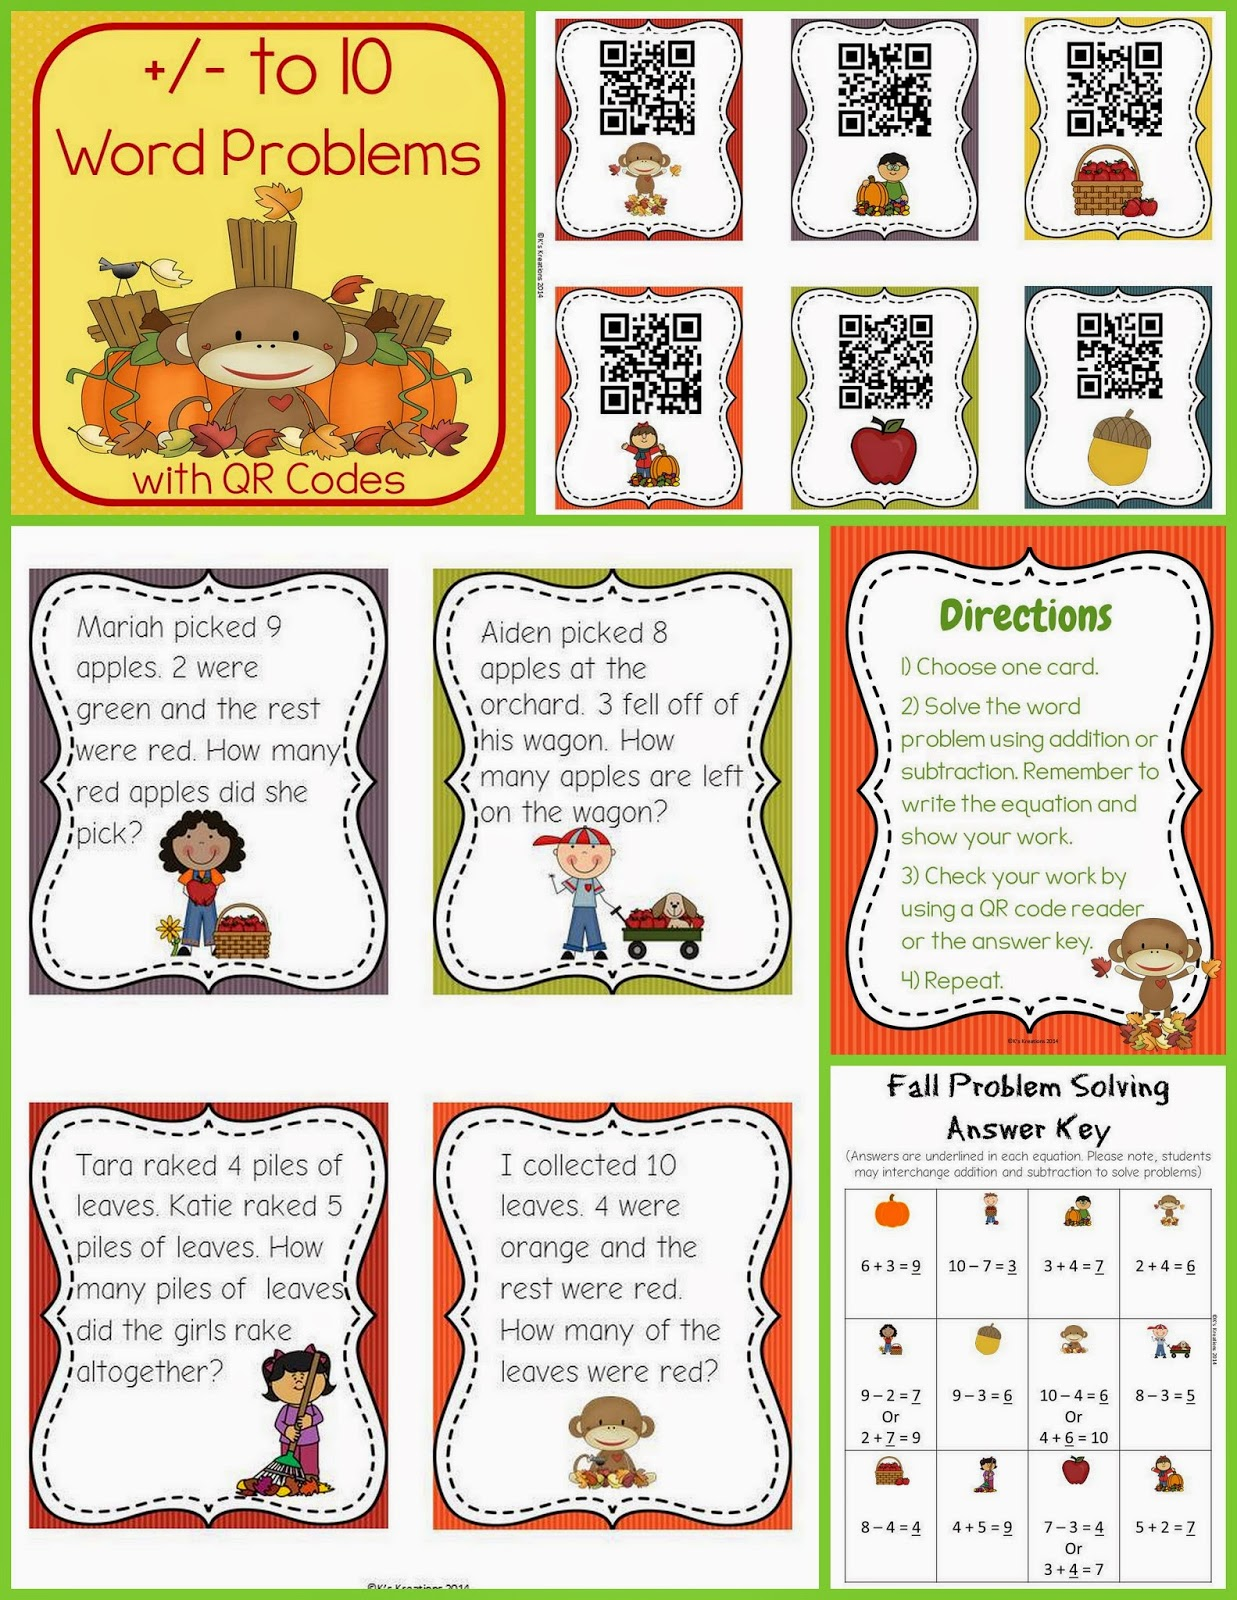 http://www.teacherspayteachers.com/Product/Fall-Word-Problems-with-QR-Codes-1st-Grade--1447054